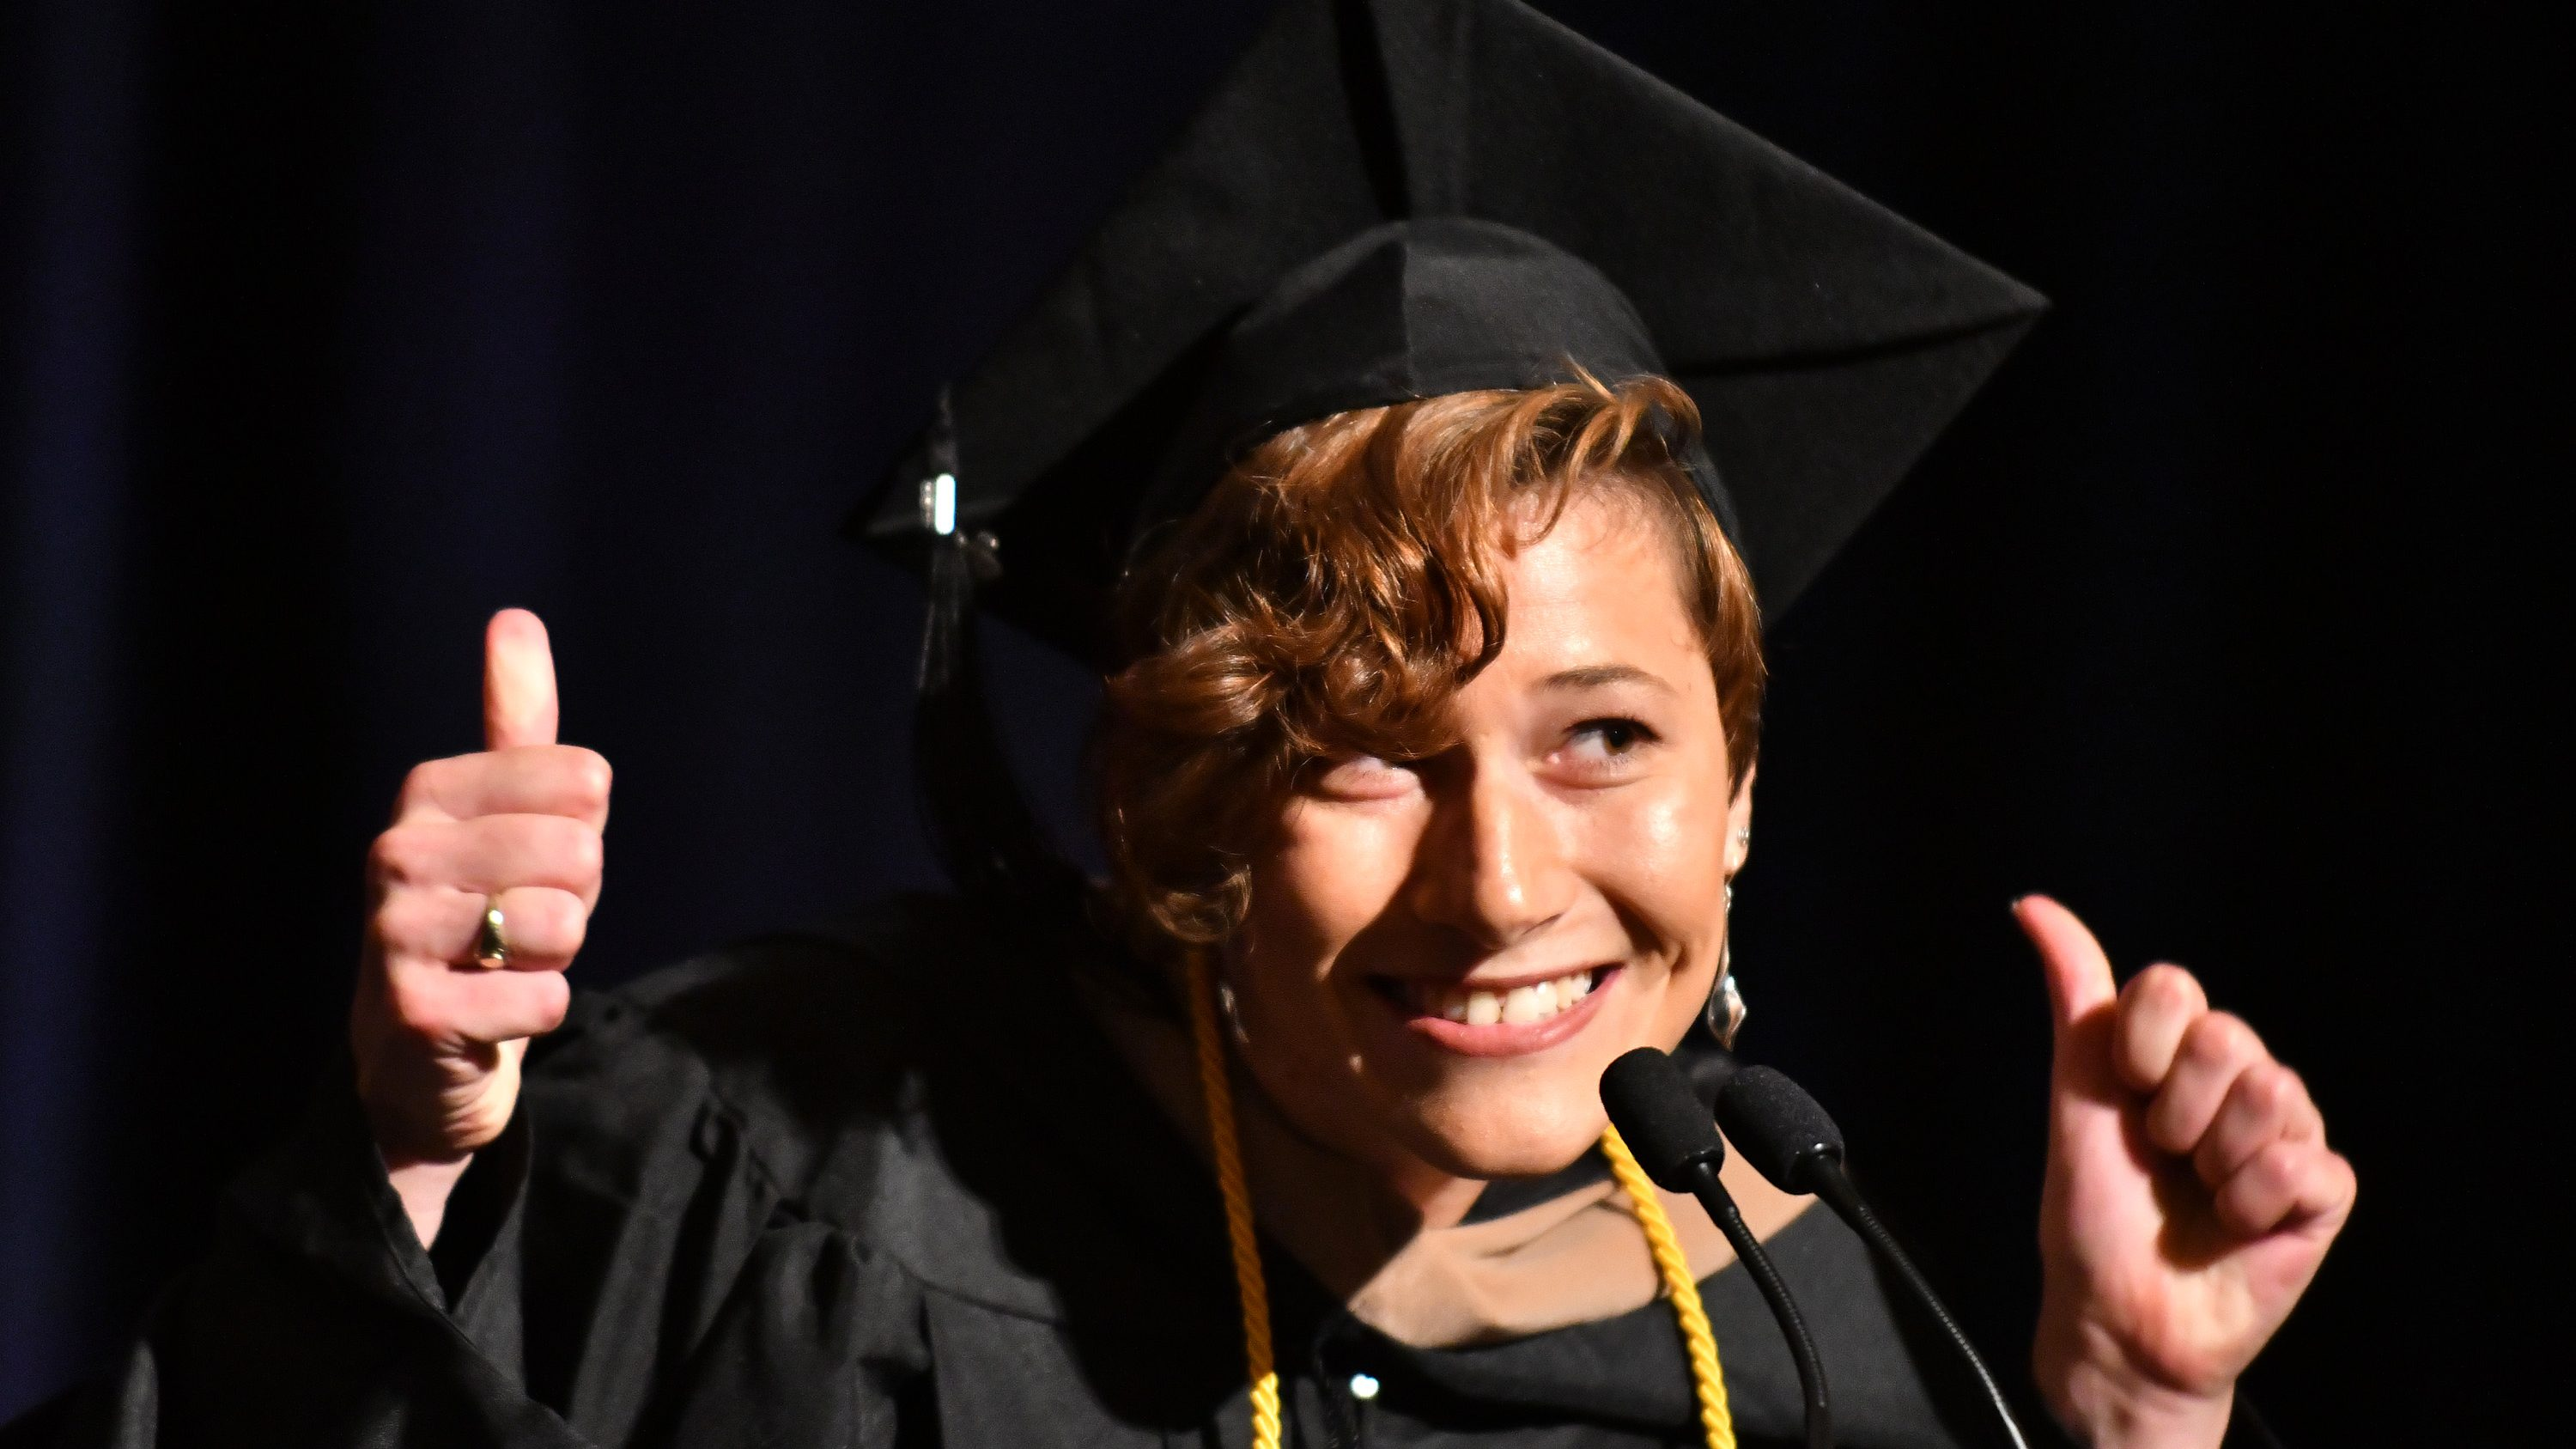 a woman in graduation robe and hat gives the thumbs up